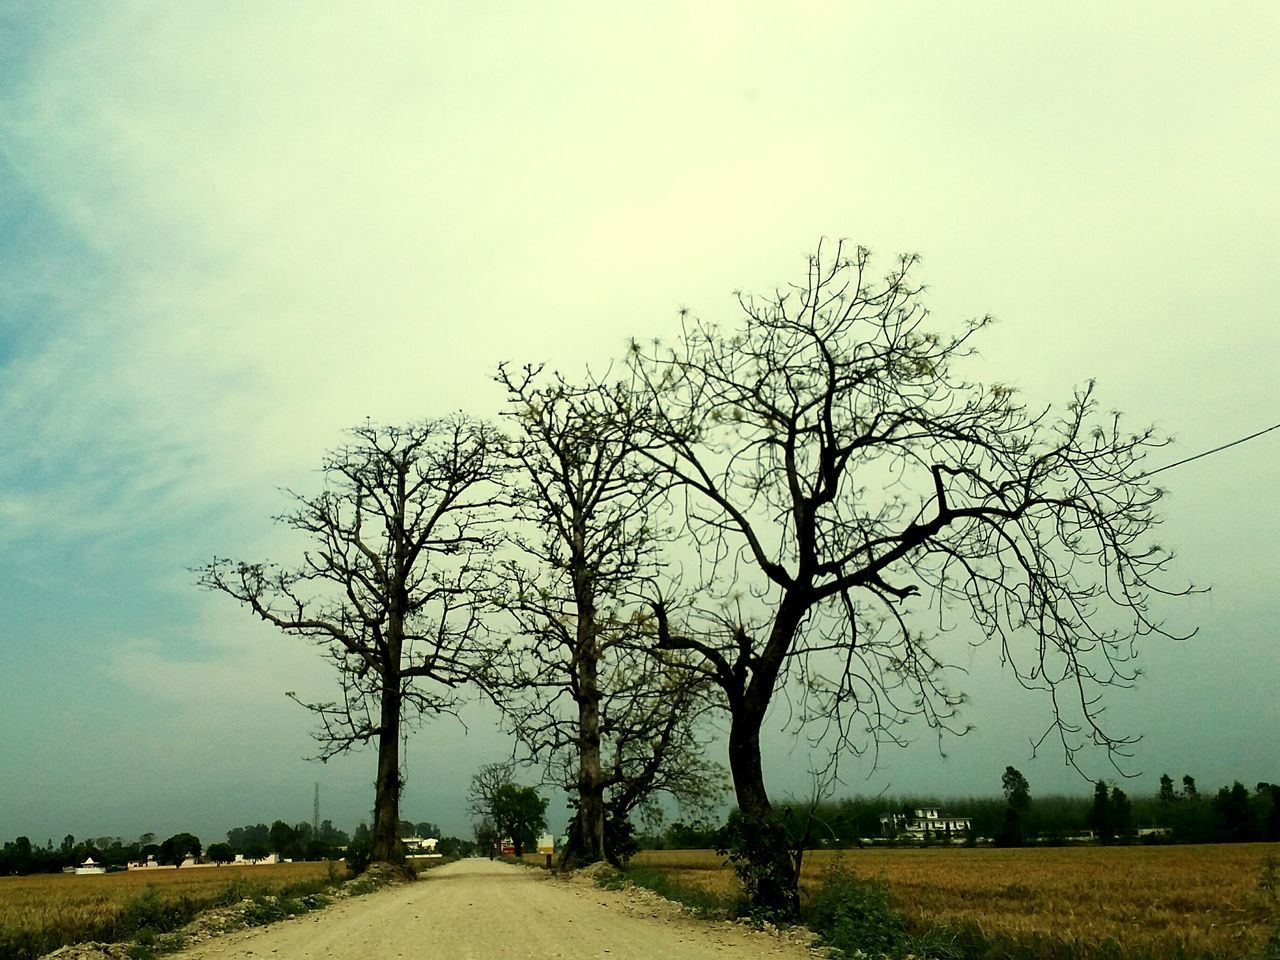 tree, landscape, bare tree, nature, tranquility, tranquil scene, scenics, sky, field, beauty in nature, outdoors, lone, day, no people, clear sky